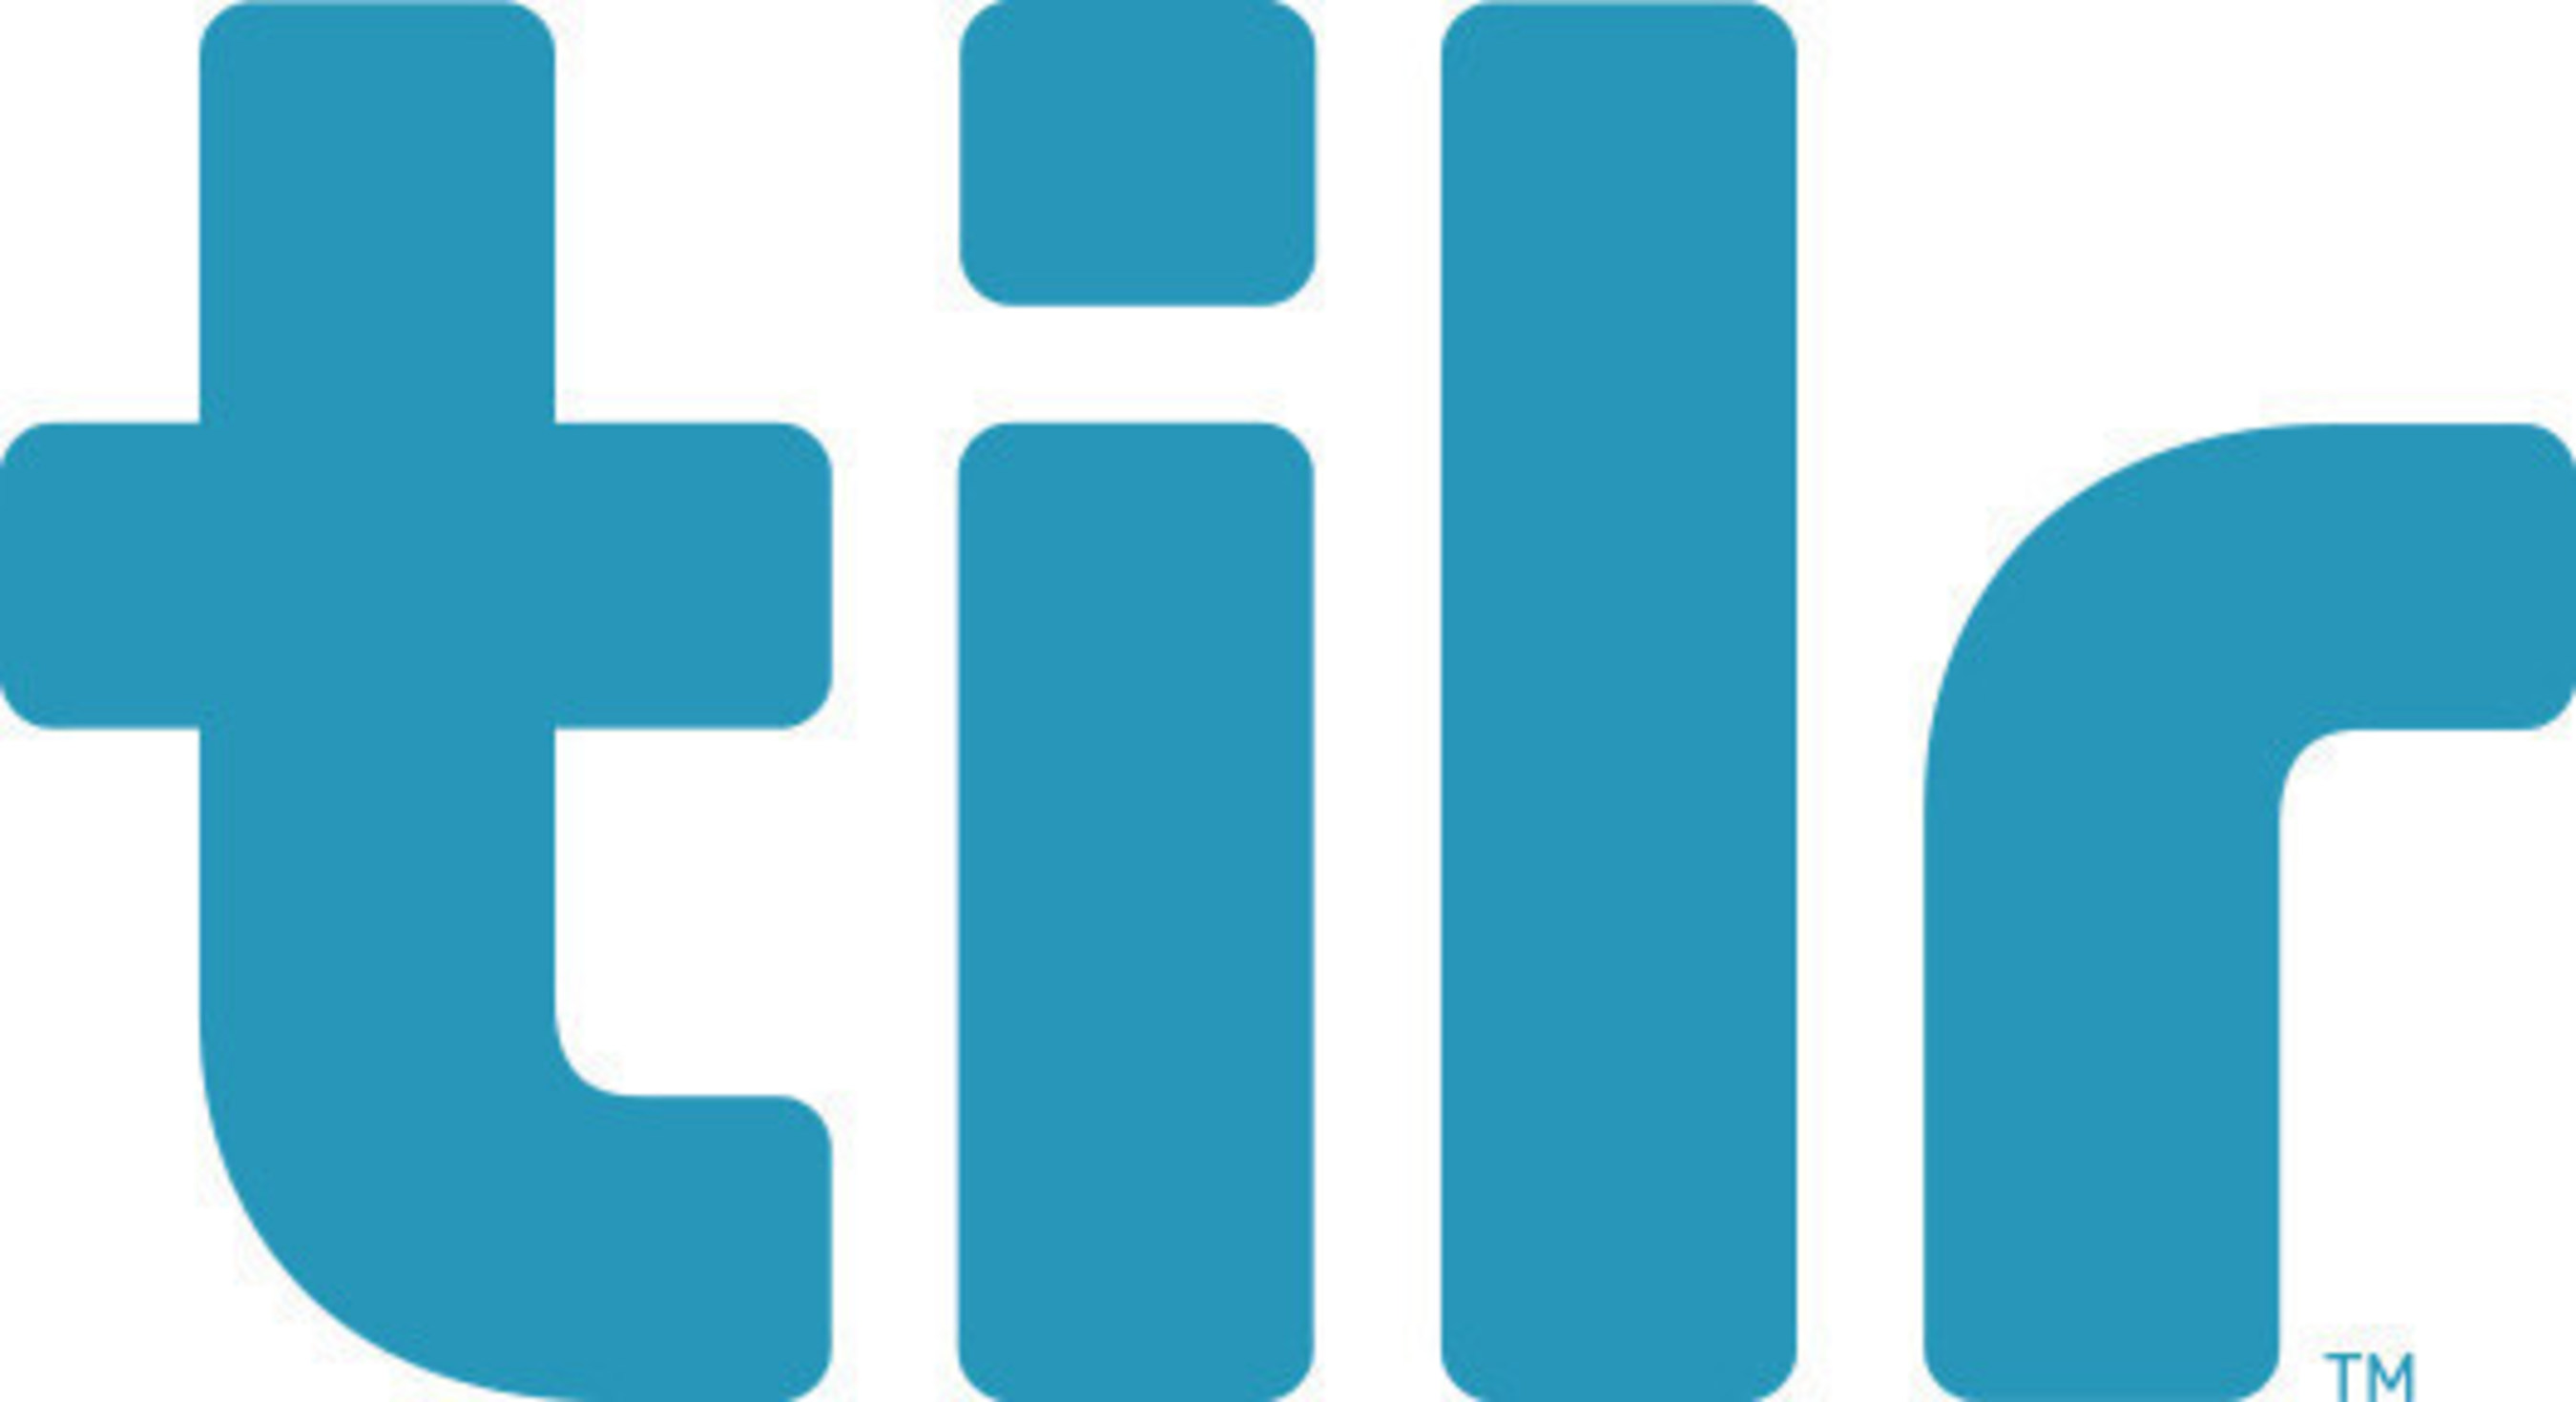 tilr connects workers to jobs via a unique algorithm focused on skills, not titles.